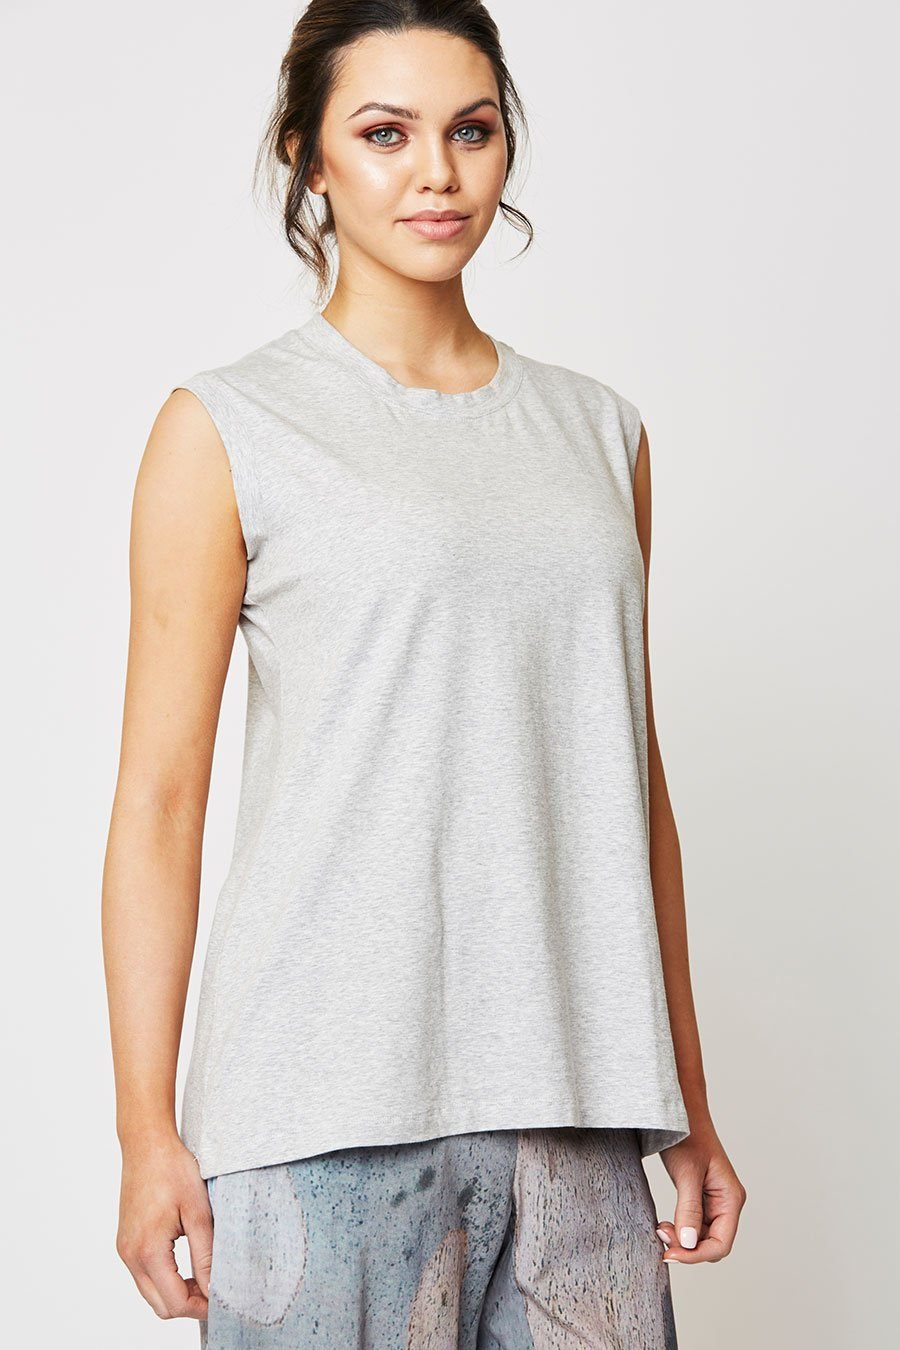 Woman wearing Ngali Grey Tank Top